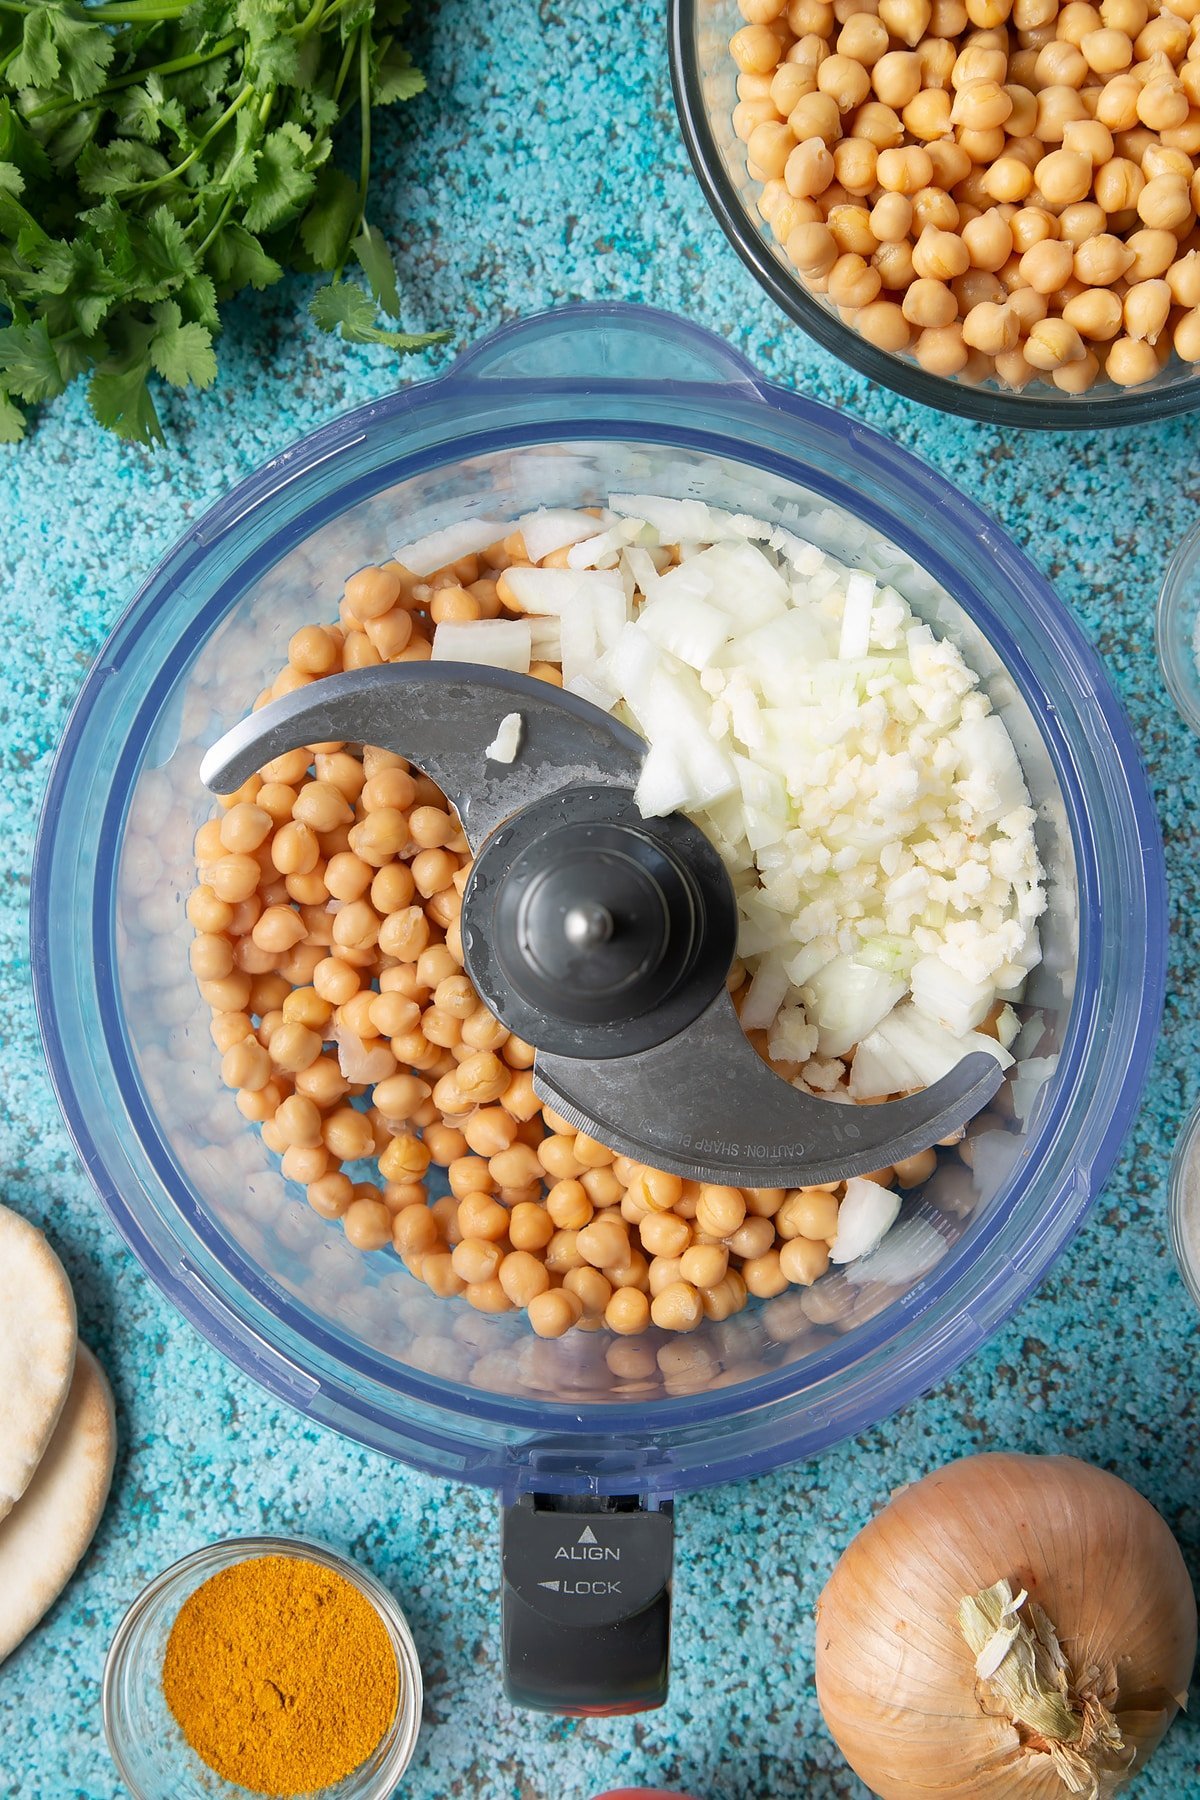 Chickpeas, onion and garlic in a food processor bowl. Ingredients to make gluten-free falafel surround the bowl.